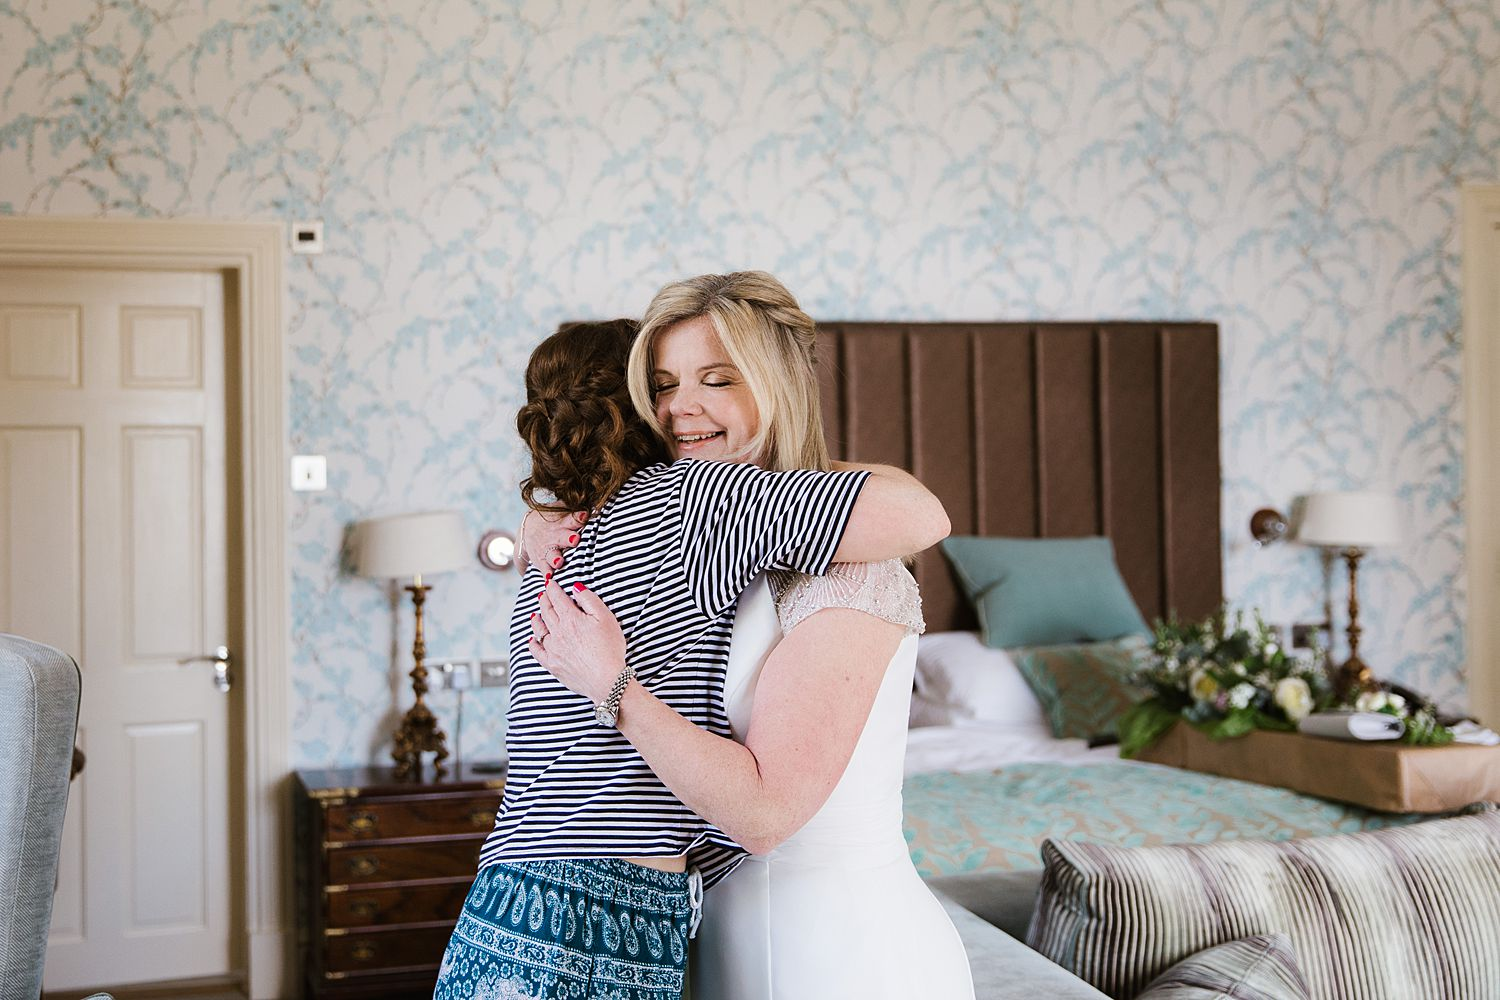 Bride embraces her bridesmaid at Storr Hall Wedding, Lake District